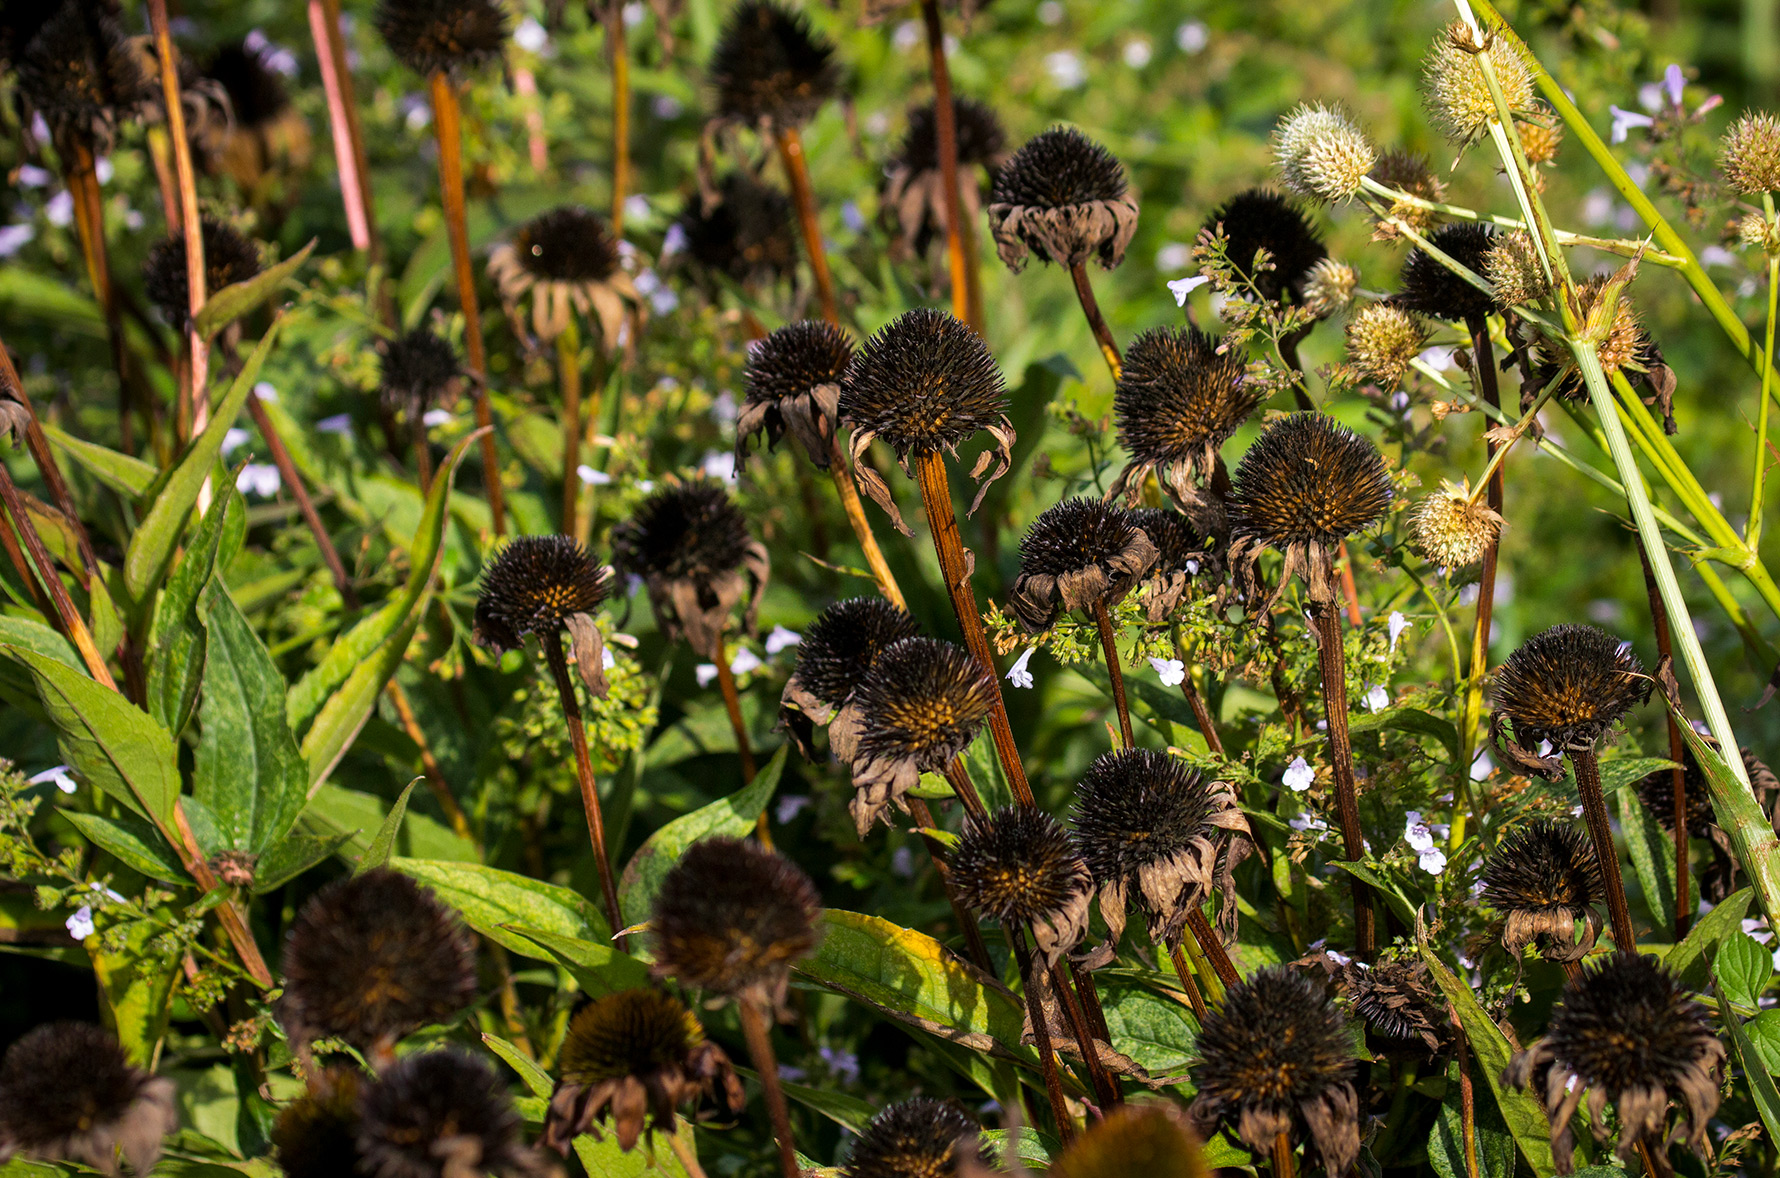 A cluster of dead coneflowers